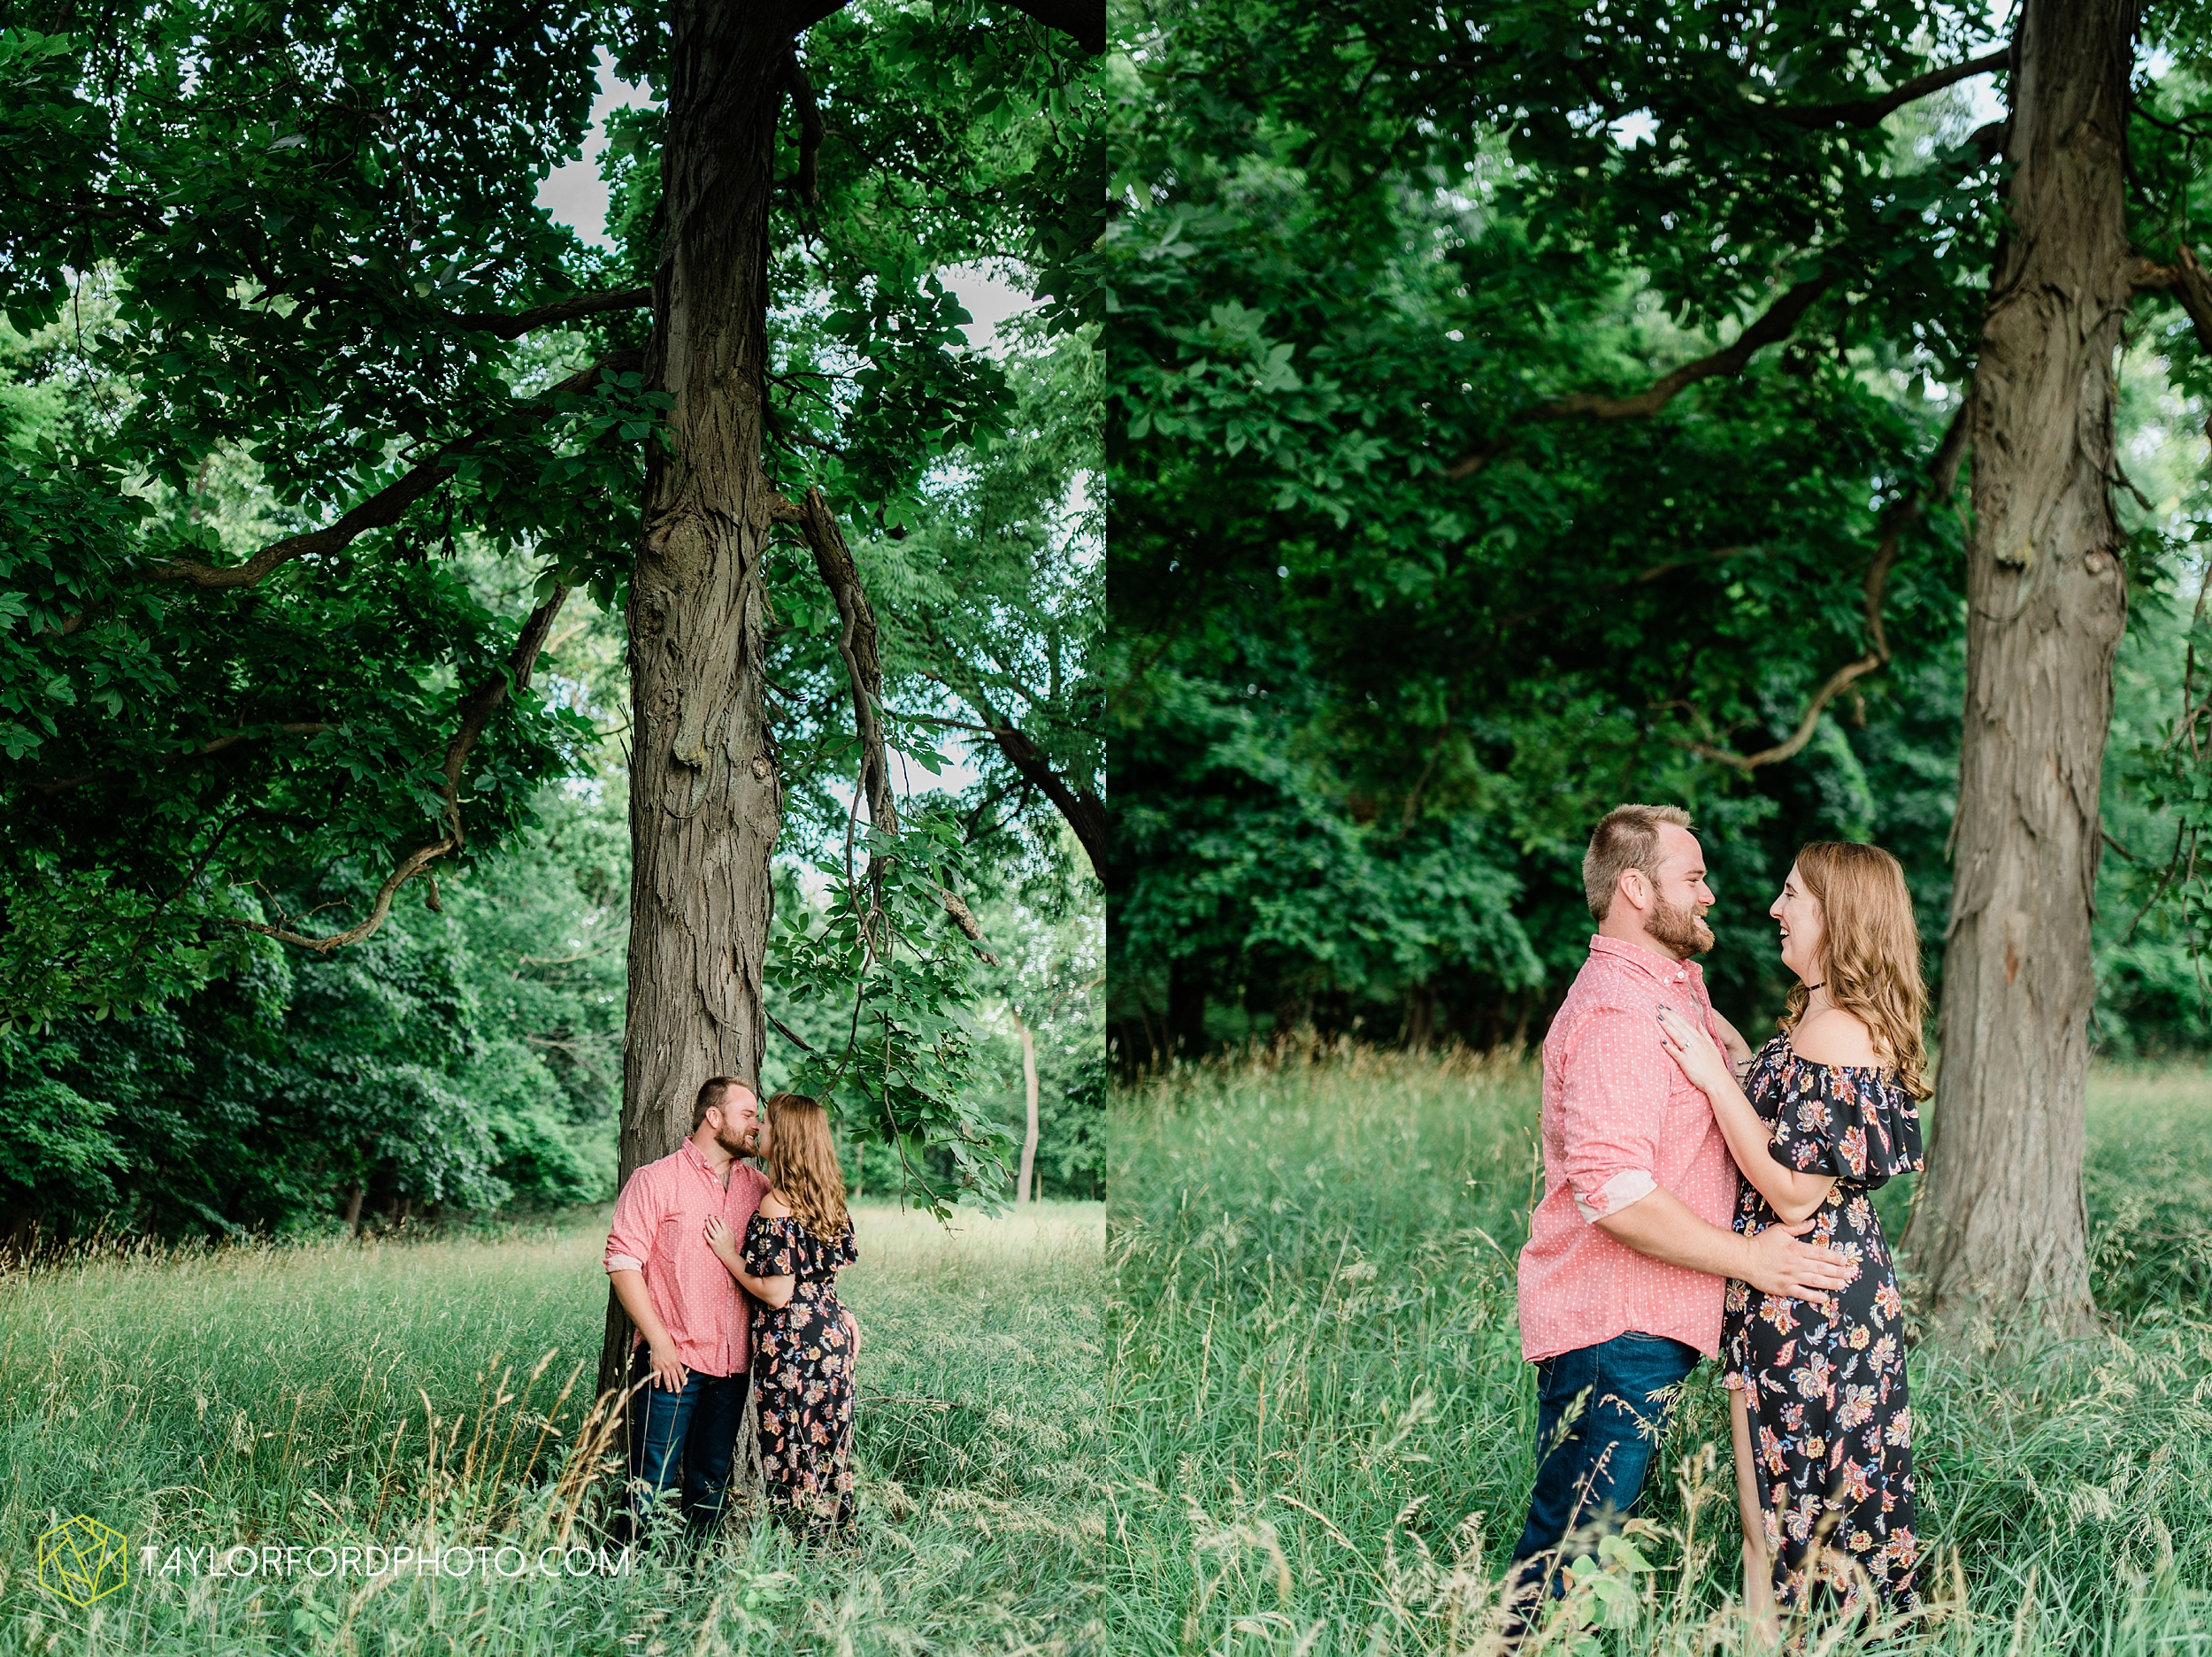 chelsey-jackson-young-downtown-fort-wayne-indiana-the-halls-deck-engagement-wedding-photographer-Taylor-Ford-Photography_8220.jpg